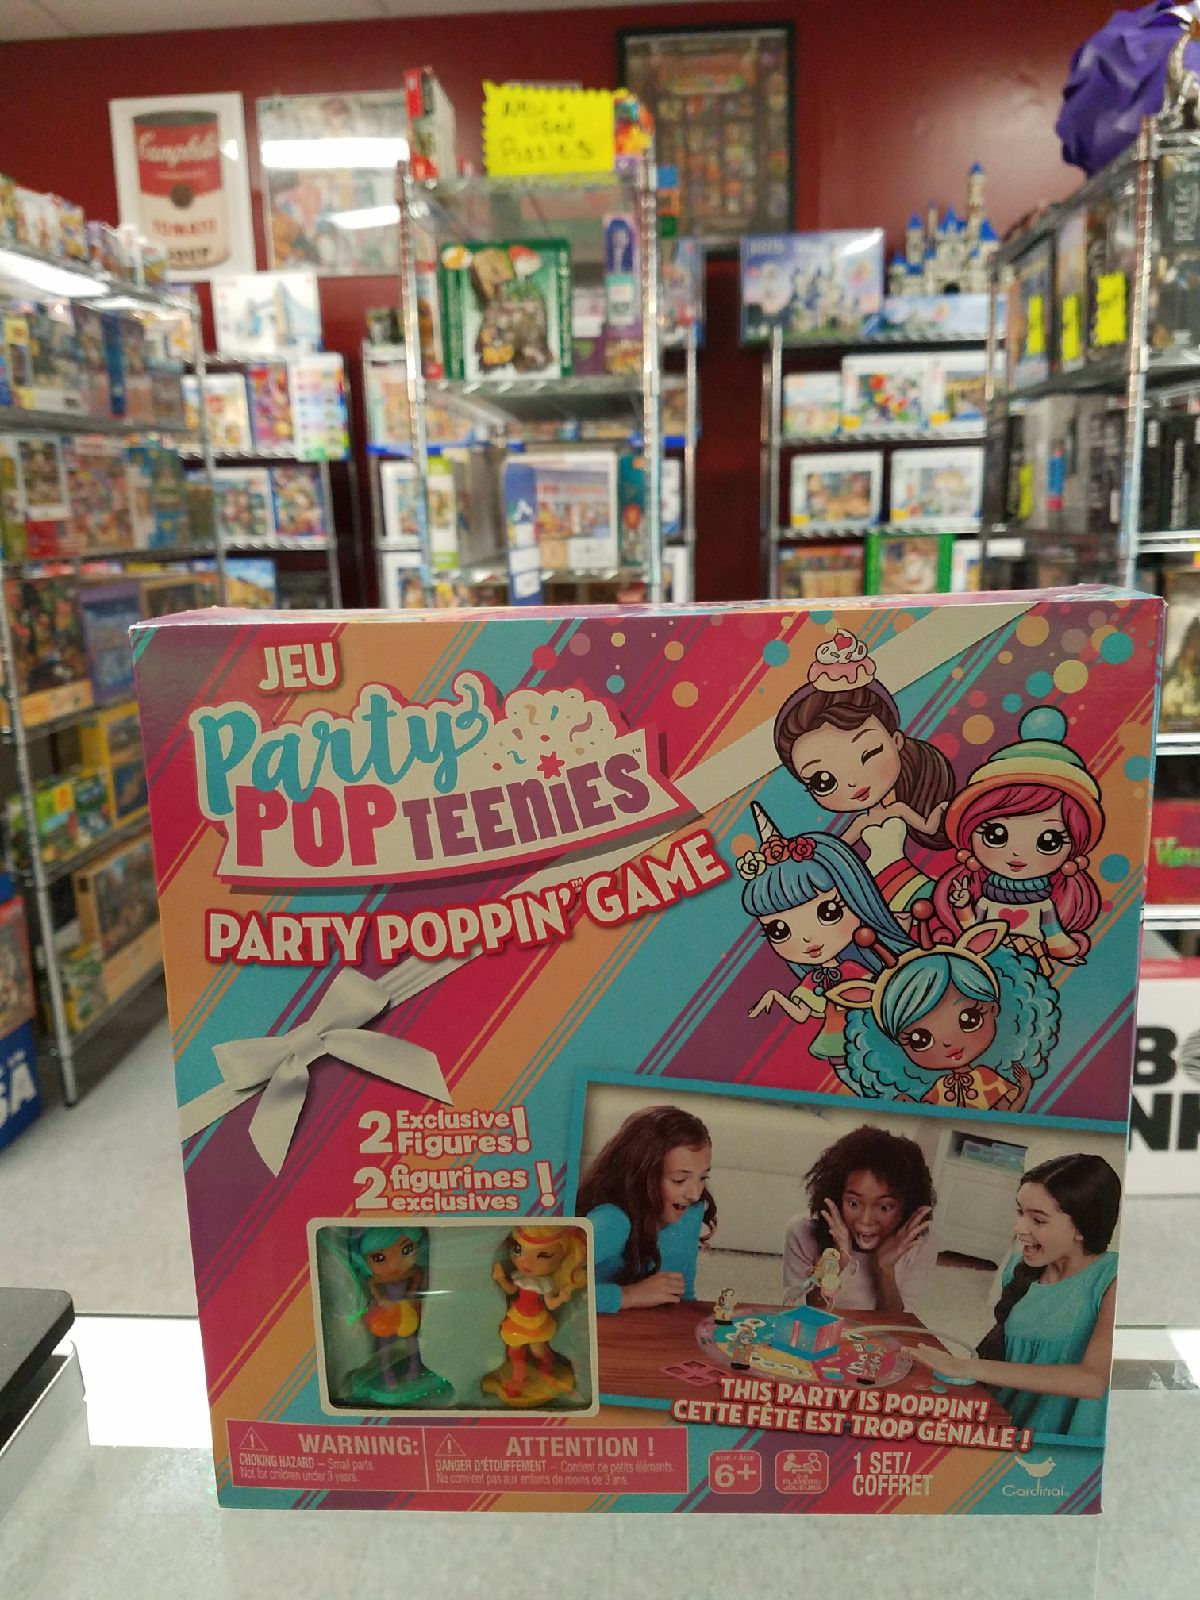 Party Popteenies game